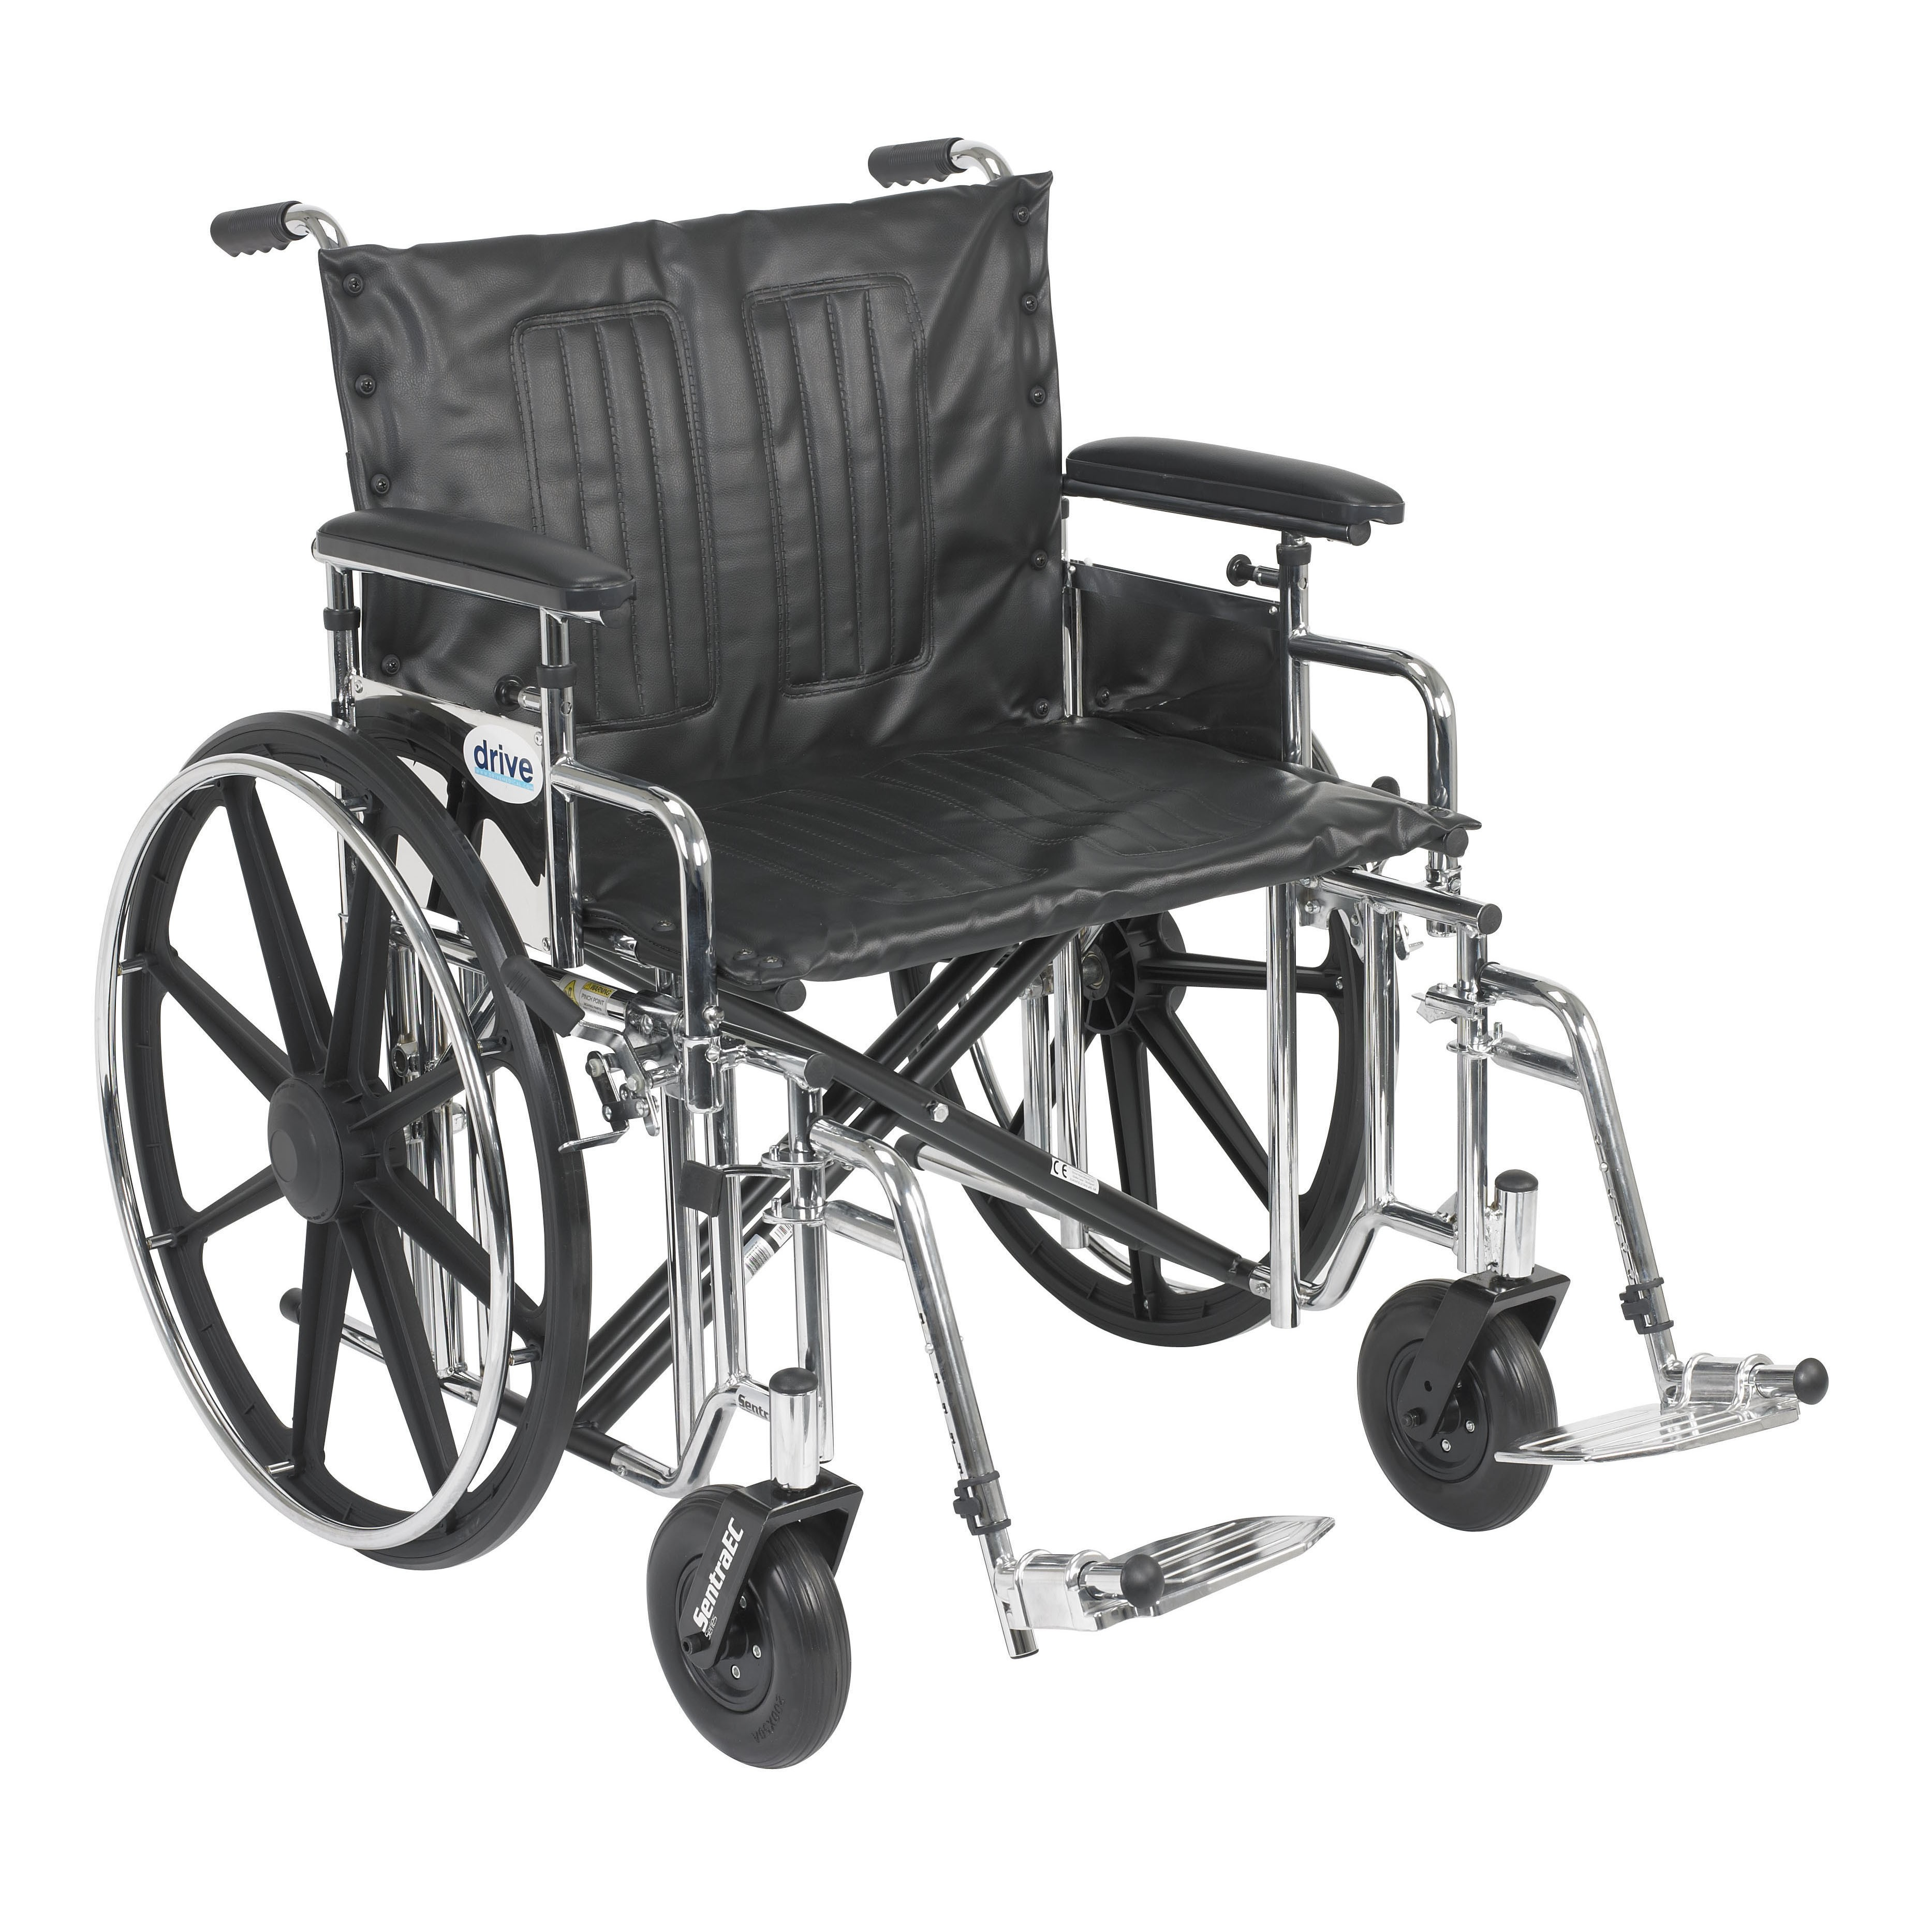 Sentra Extra Heavy Duty Wheelchair With Detachable